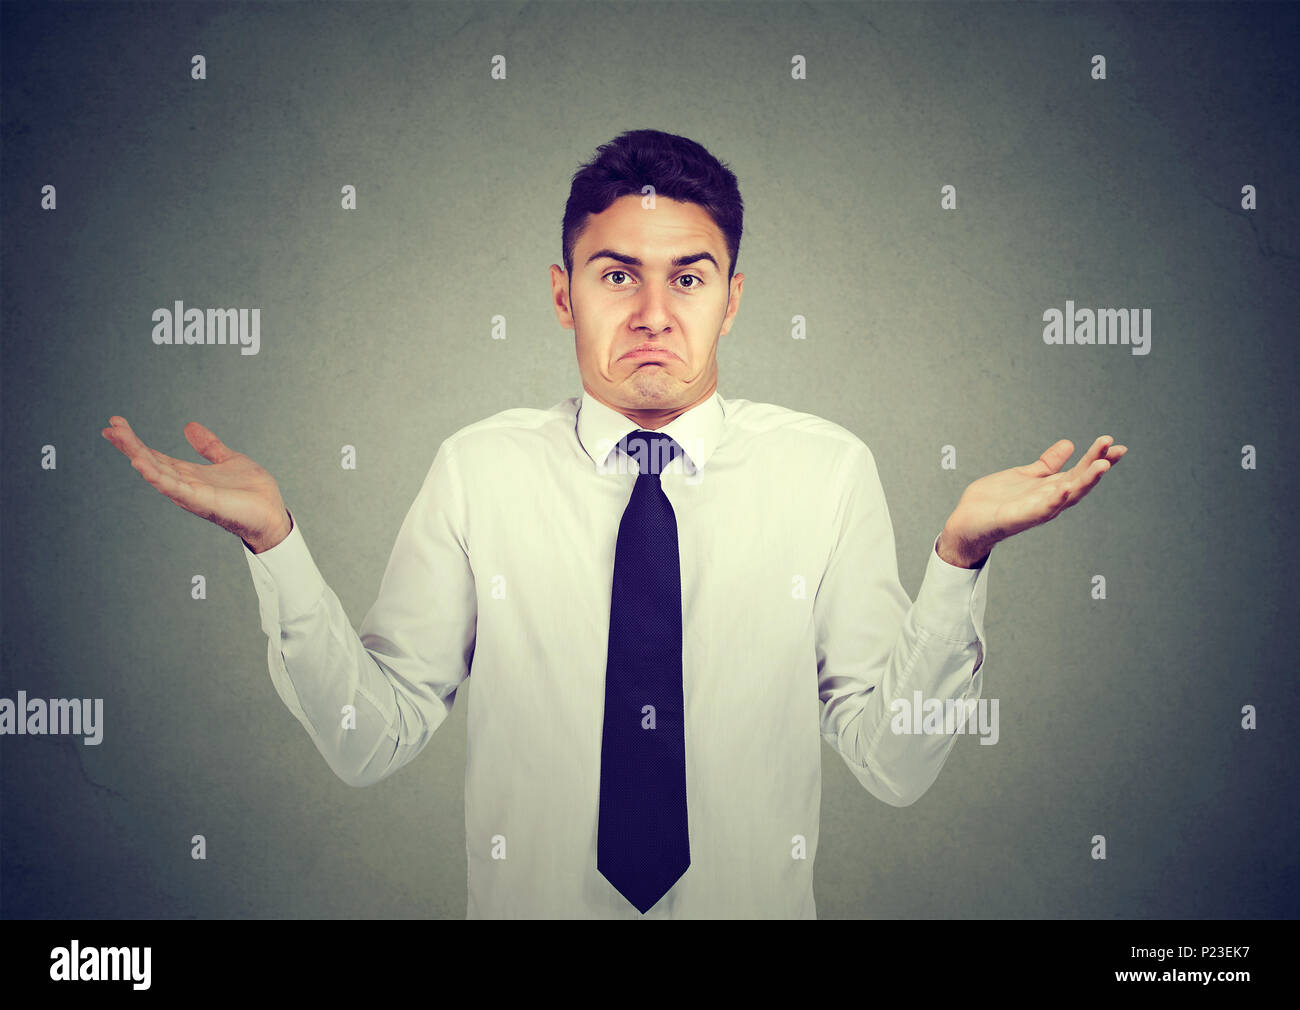 Closeup portrait young business man shrugging shoulders isolated on gray wall background. Body language - Stock Image